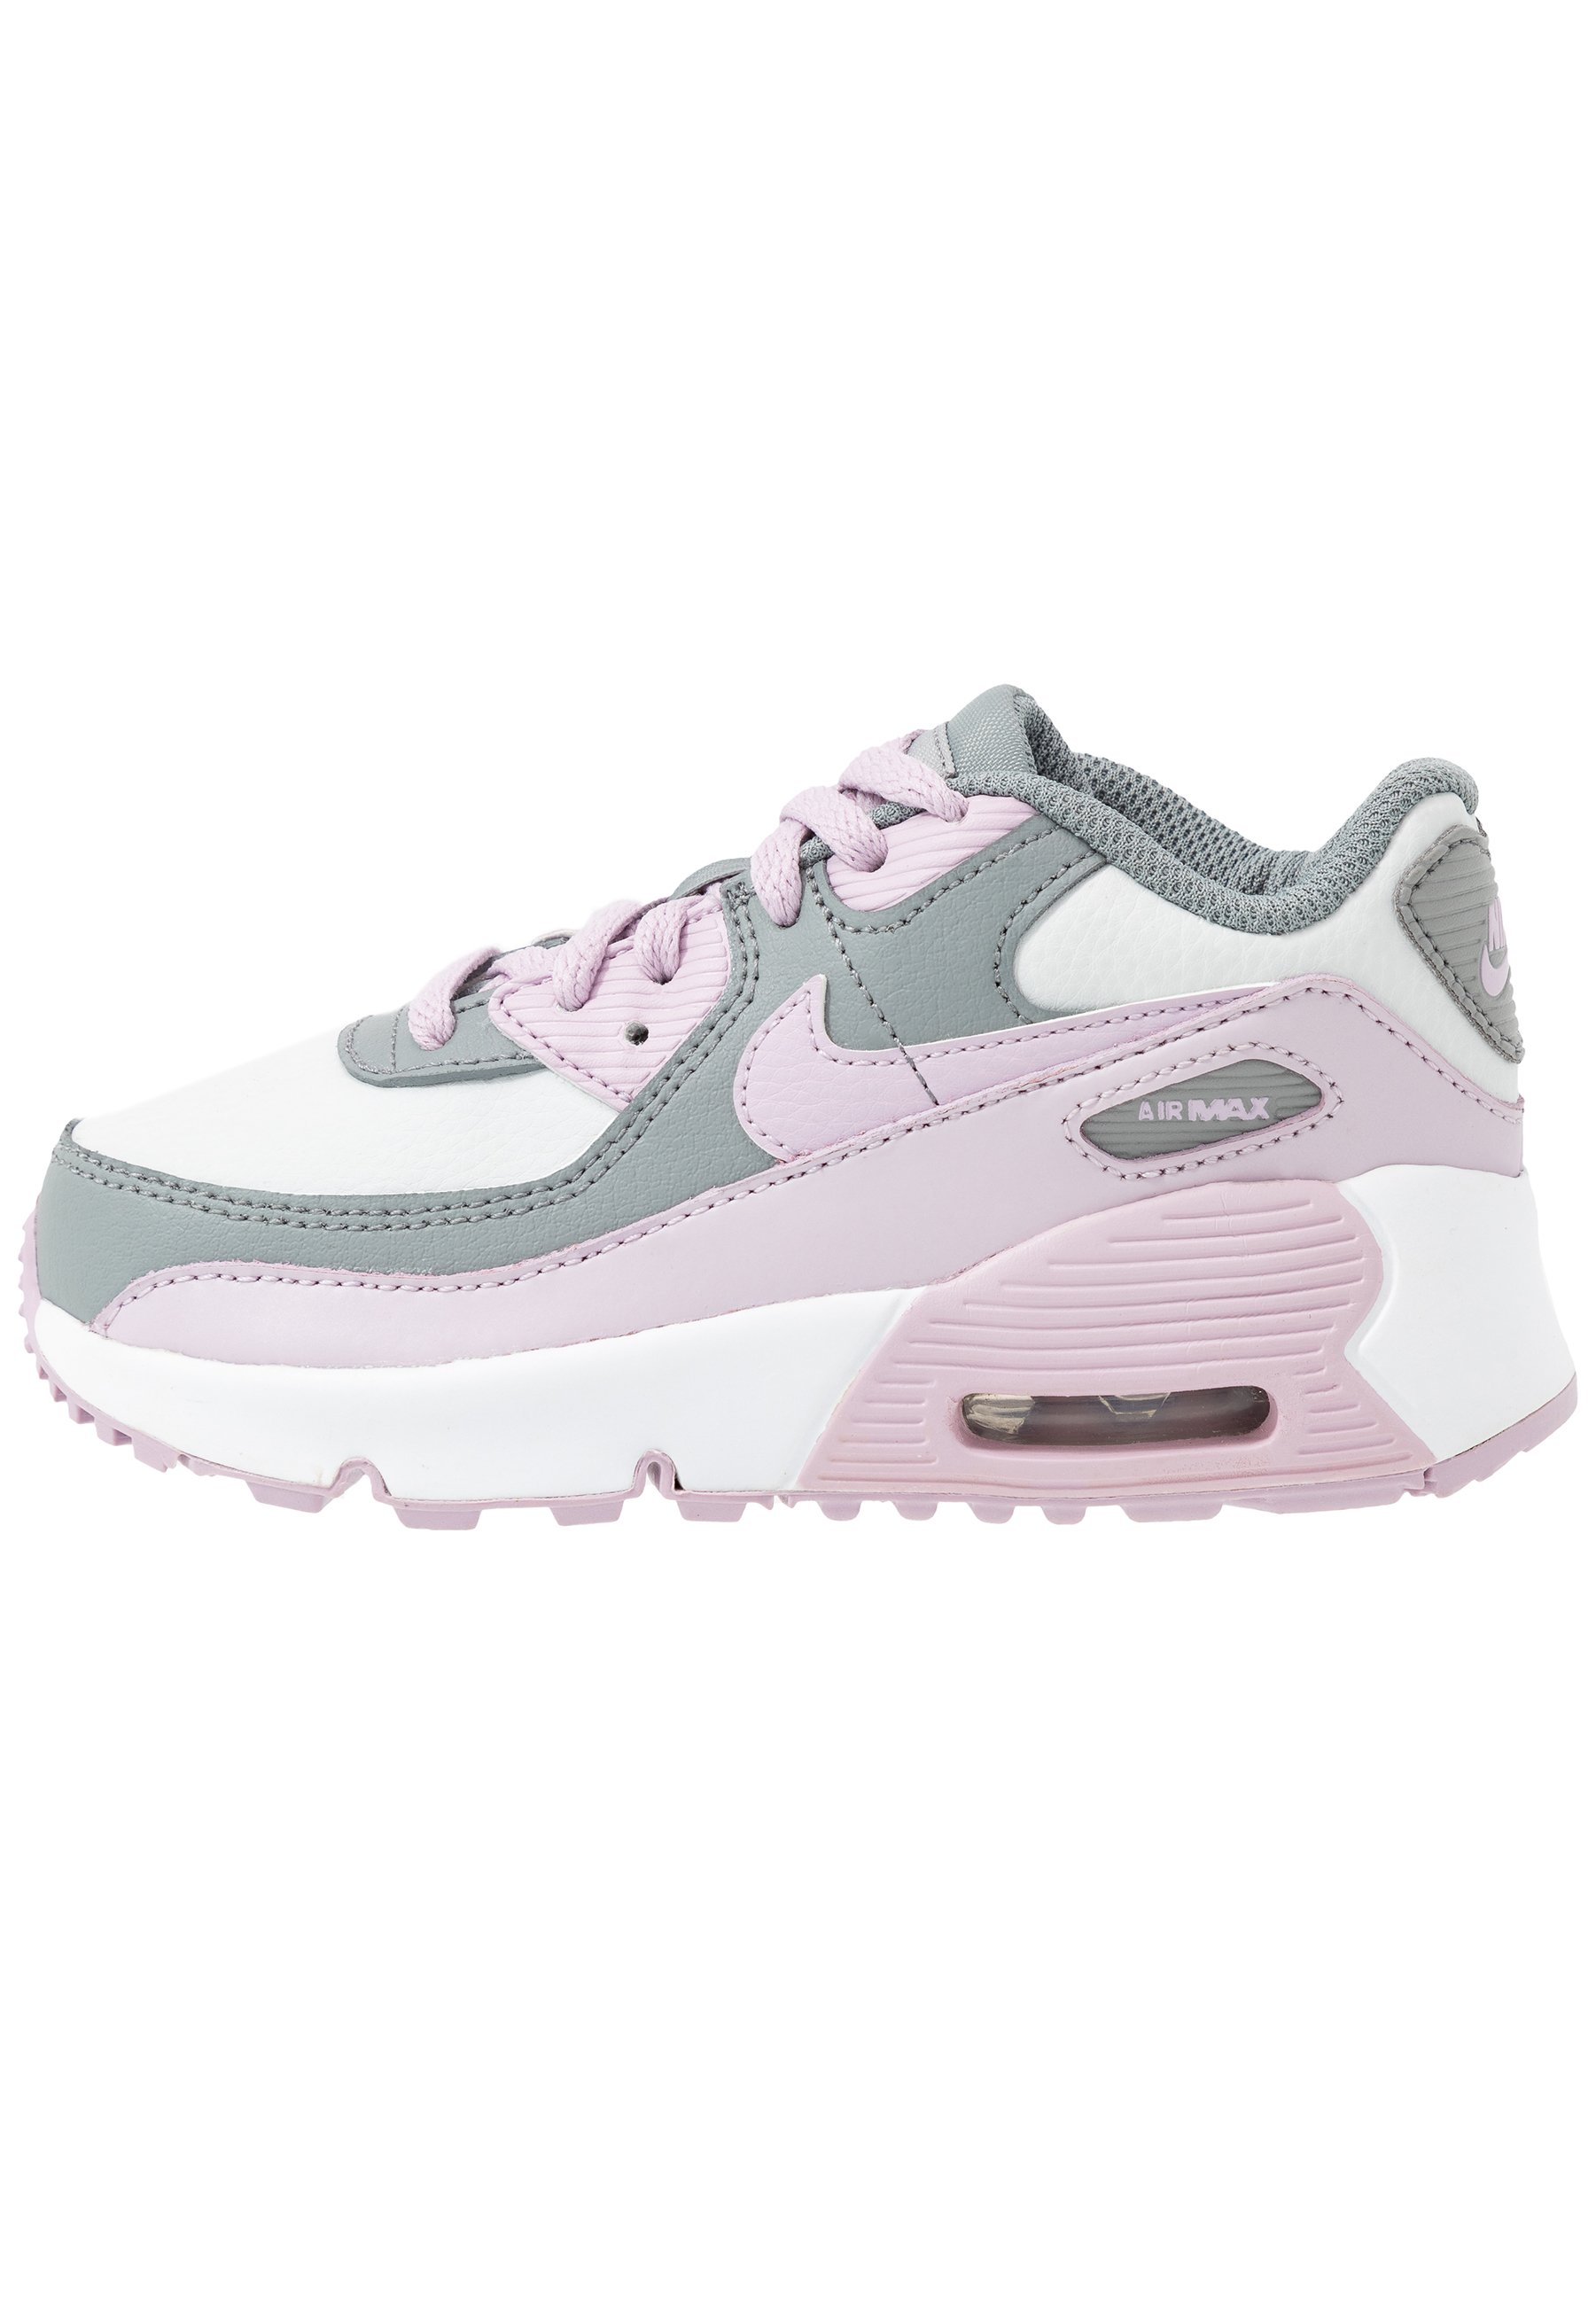 Air Max 90 Sneakers laag particle greyiced lilacphoton dustwhite